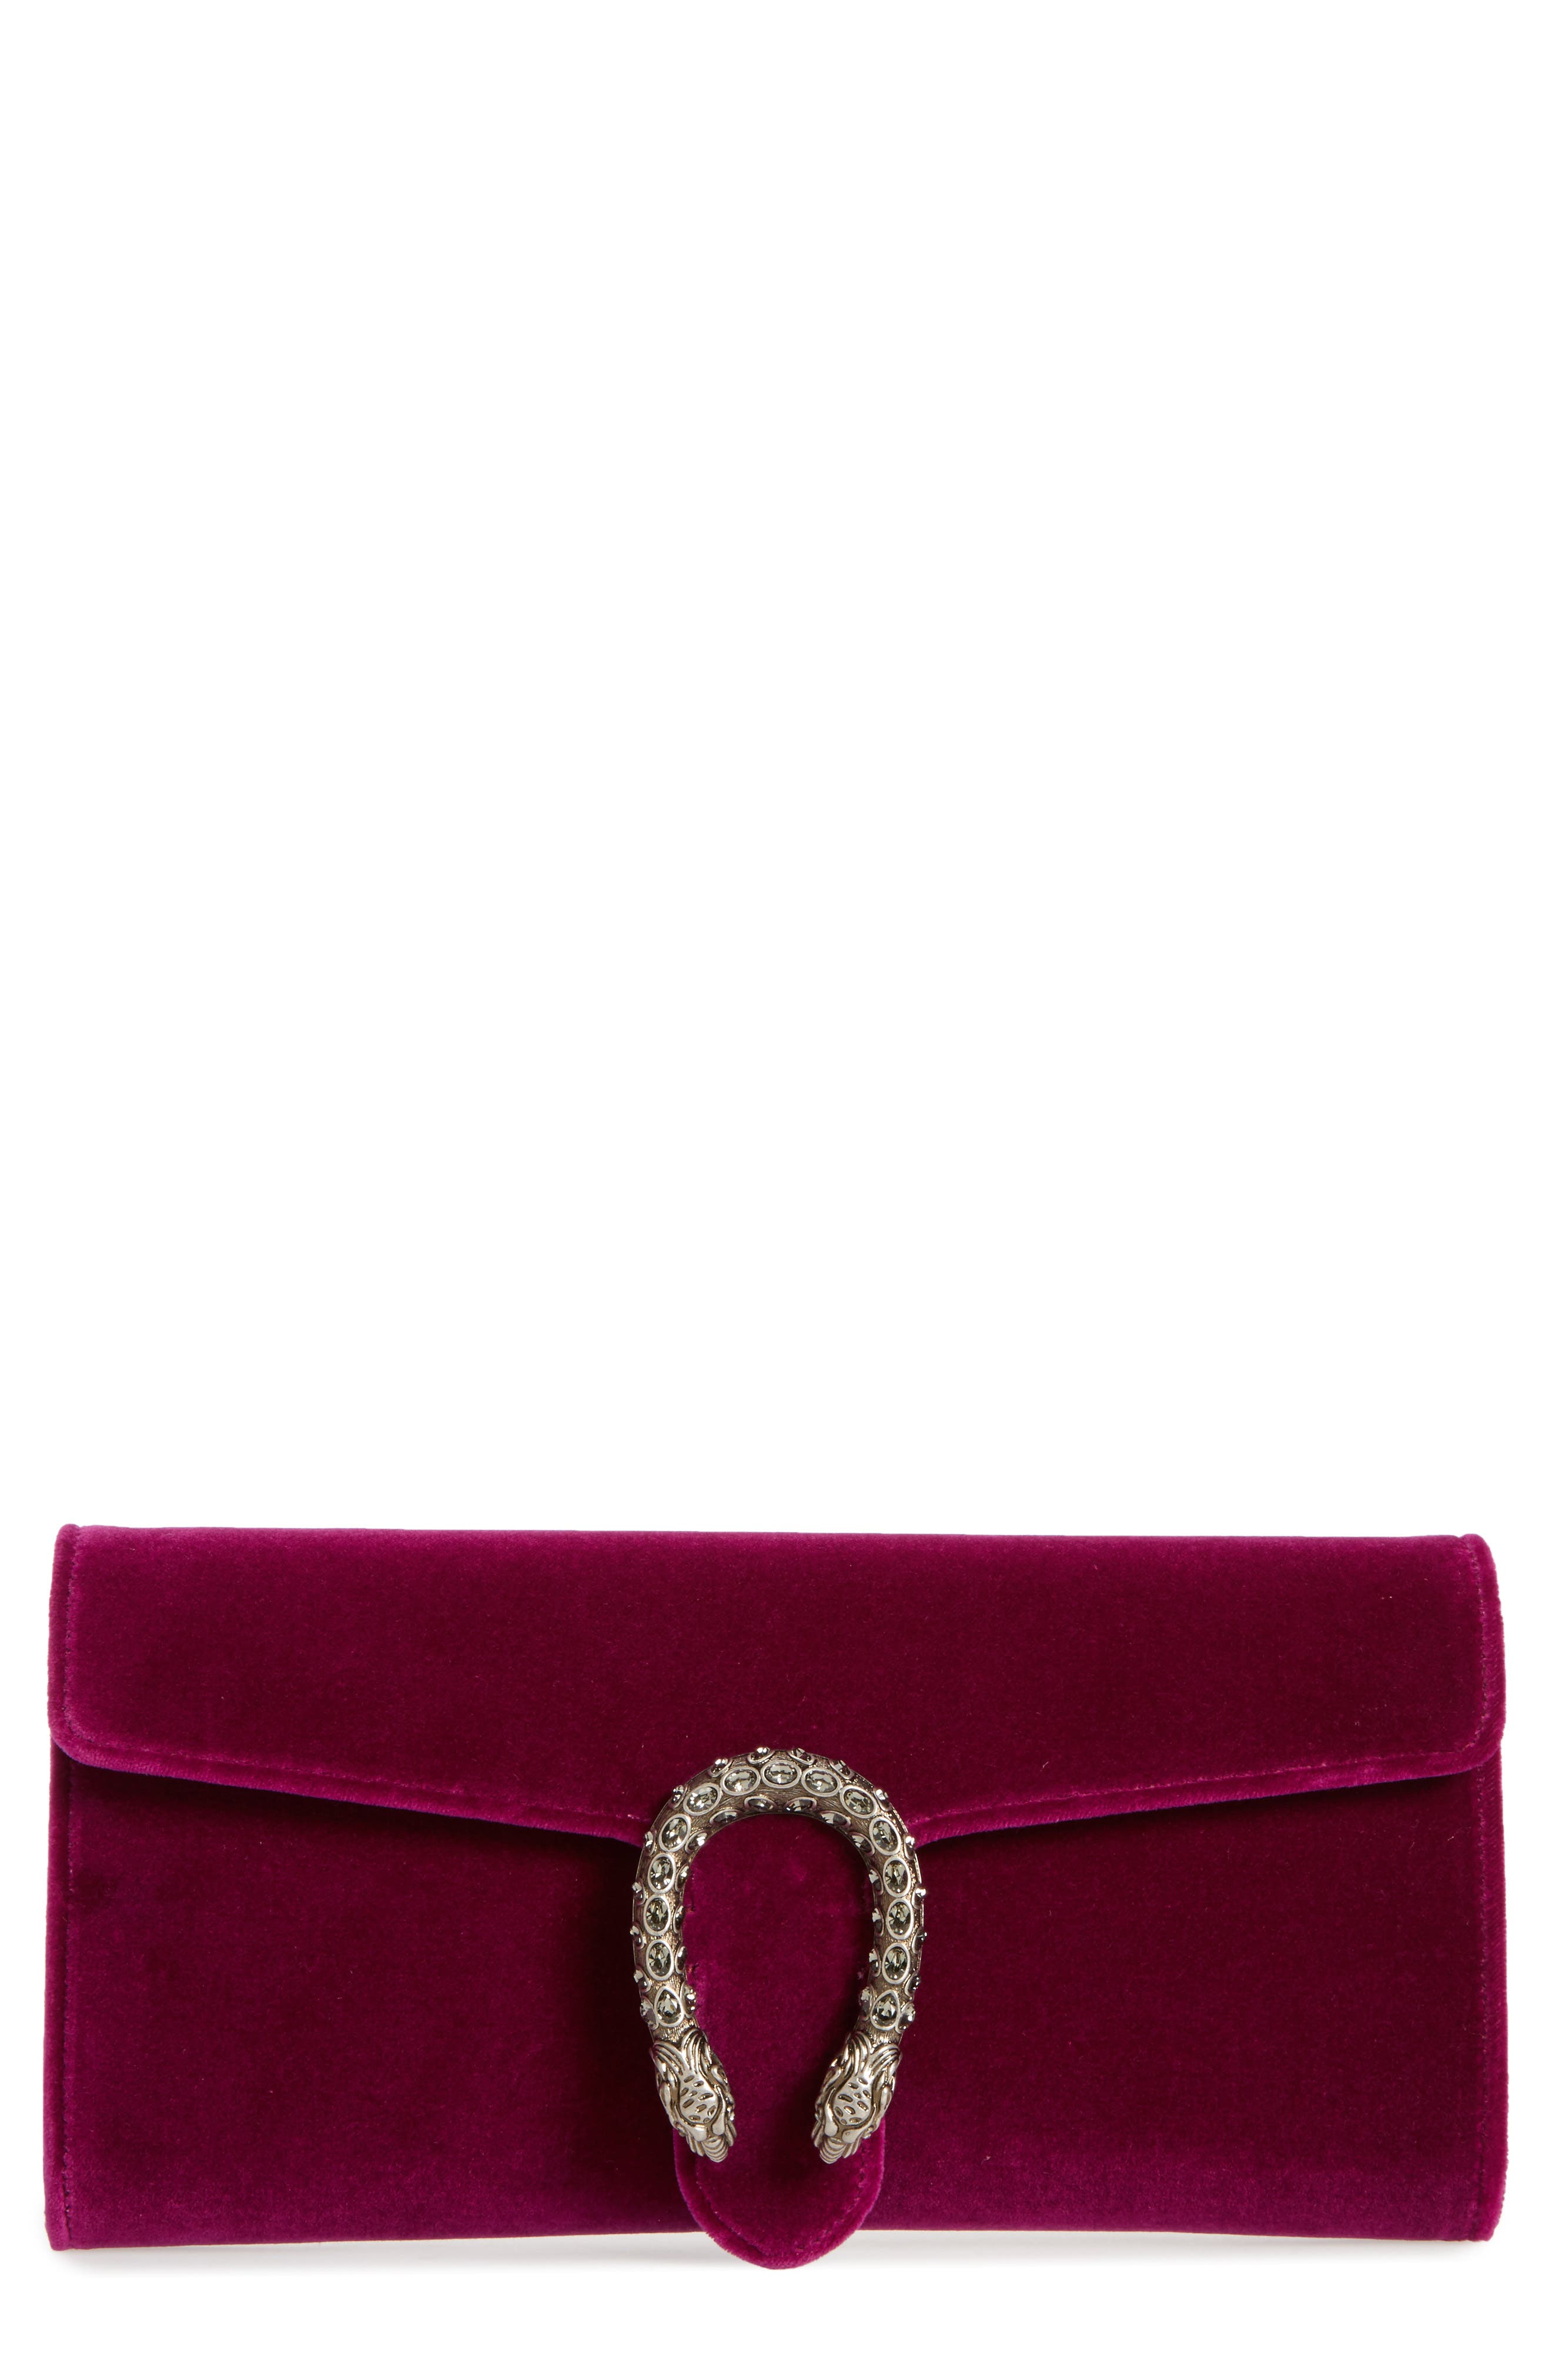 Alternate Image 1 Selected - Gucci Dionysus Velvet Clutch